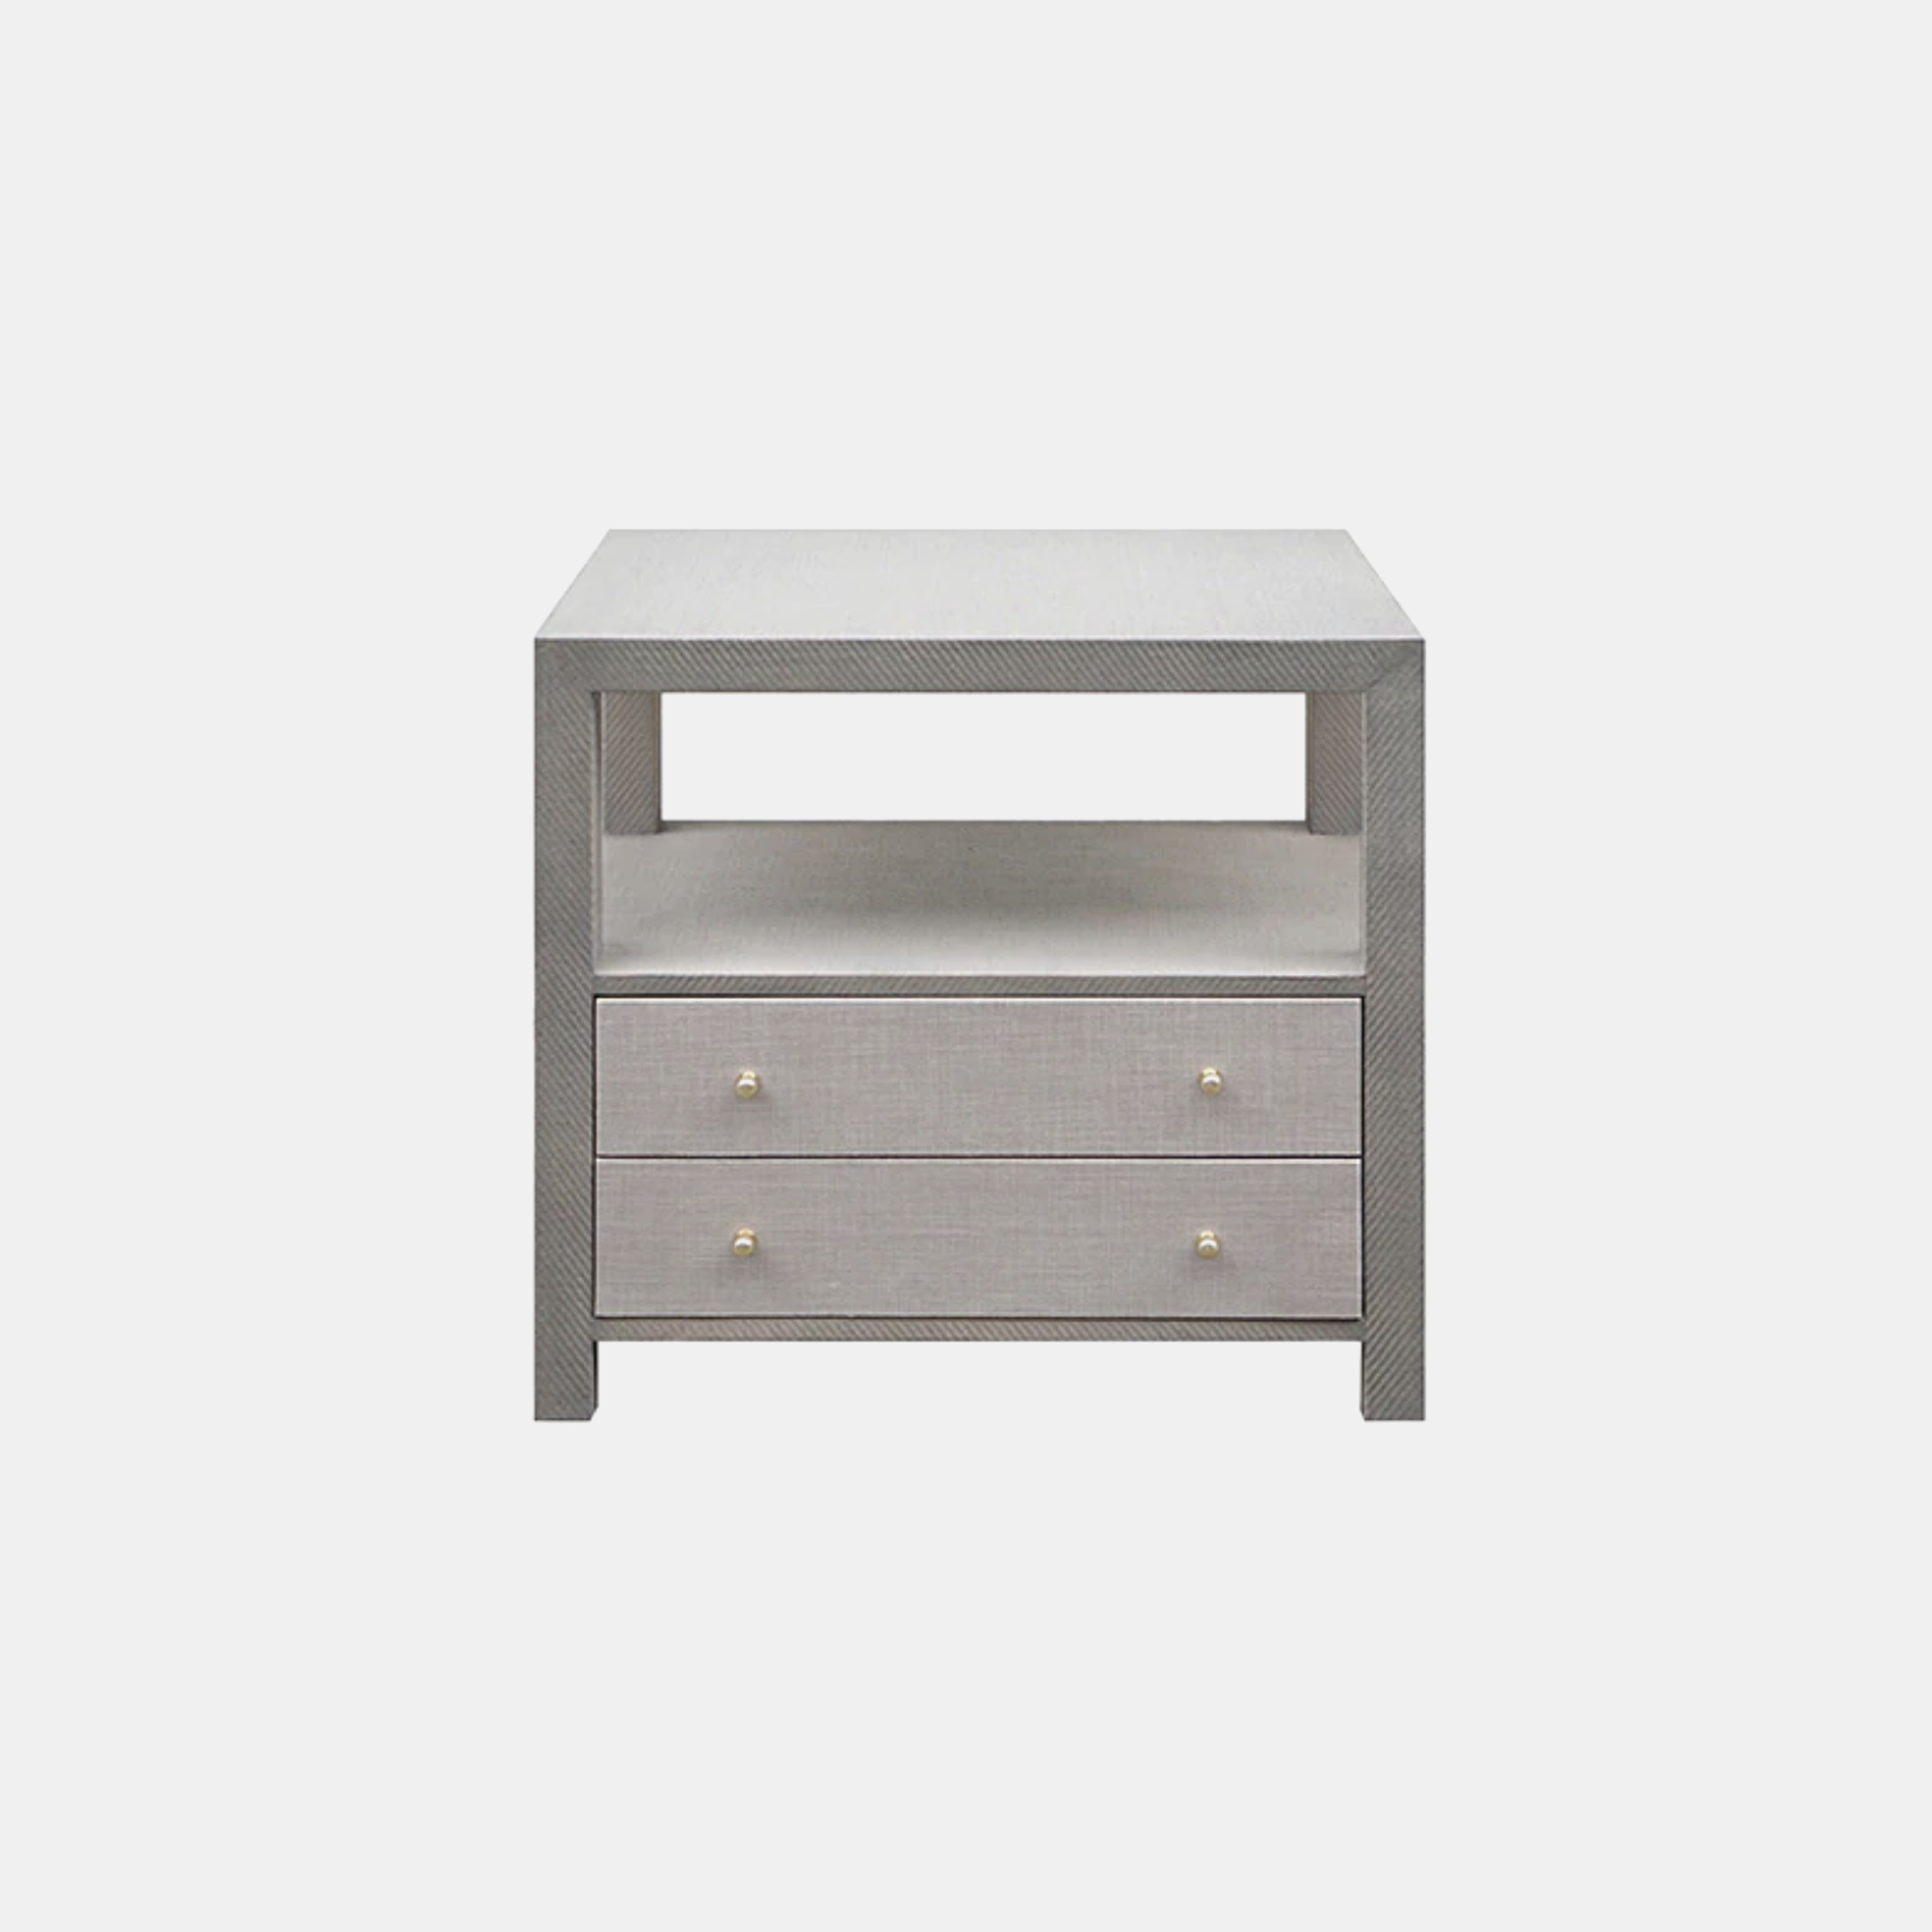 """Hattie Table  30""""l x 18""""d x 29""""h Available in gray grasscloth with gray linen drawers (shown) and natural grasscloth with white lacquer drawers. SKU517WAY"""